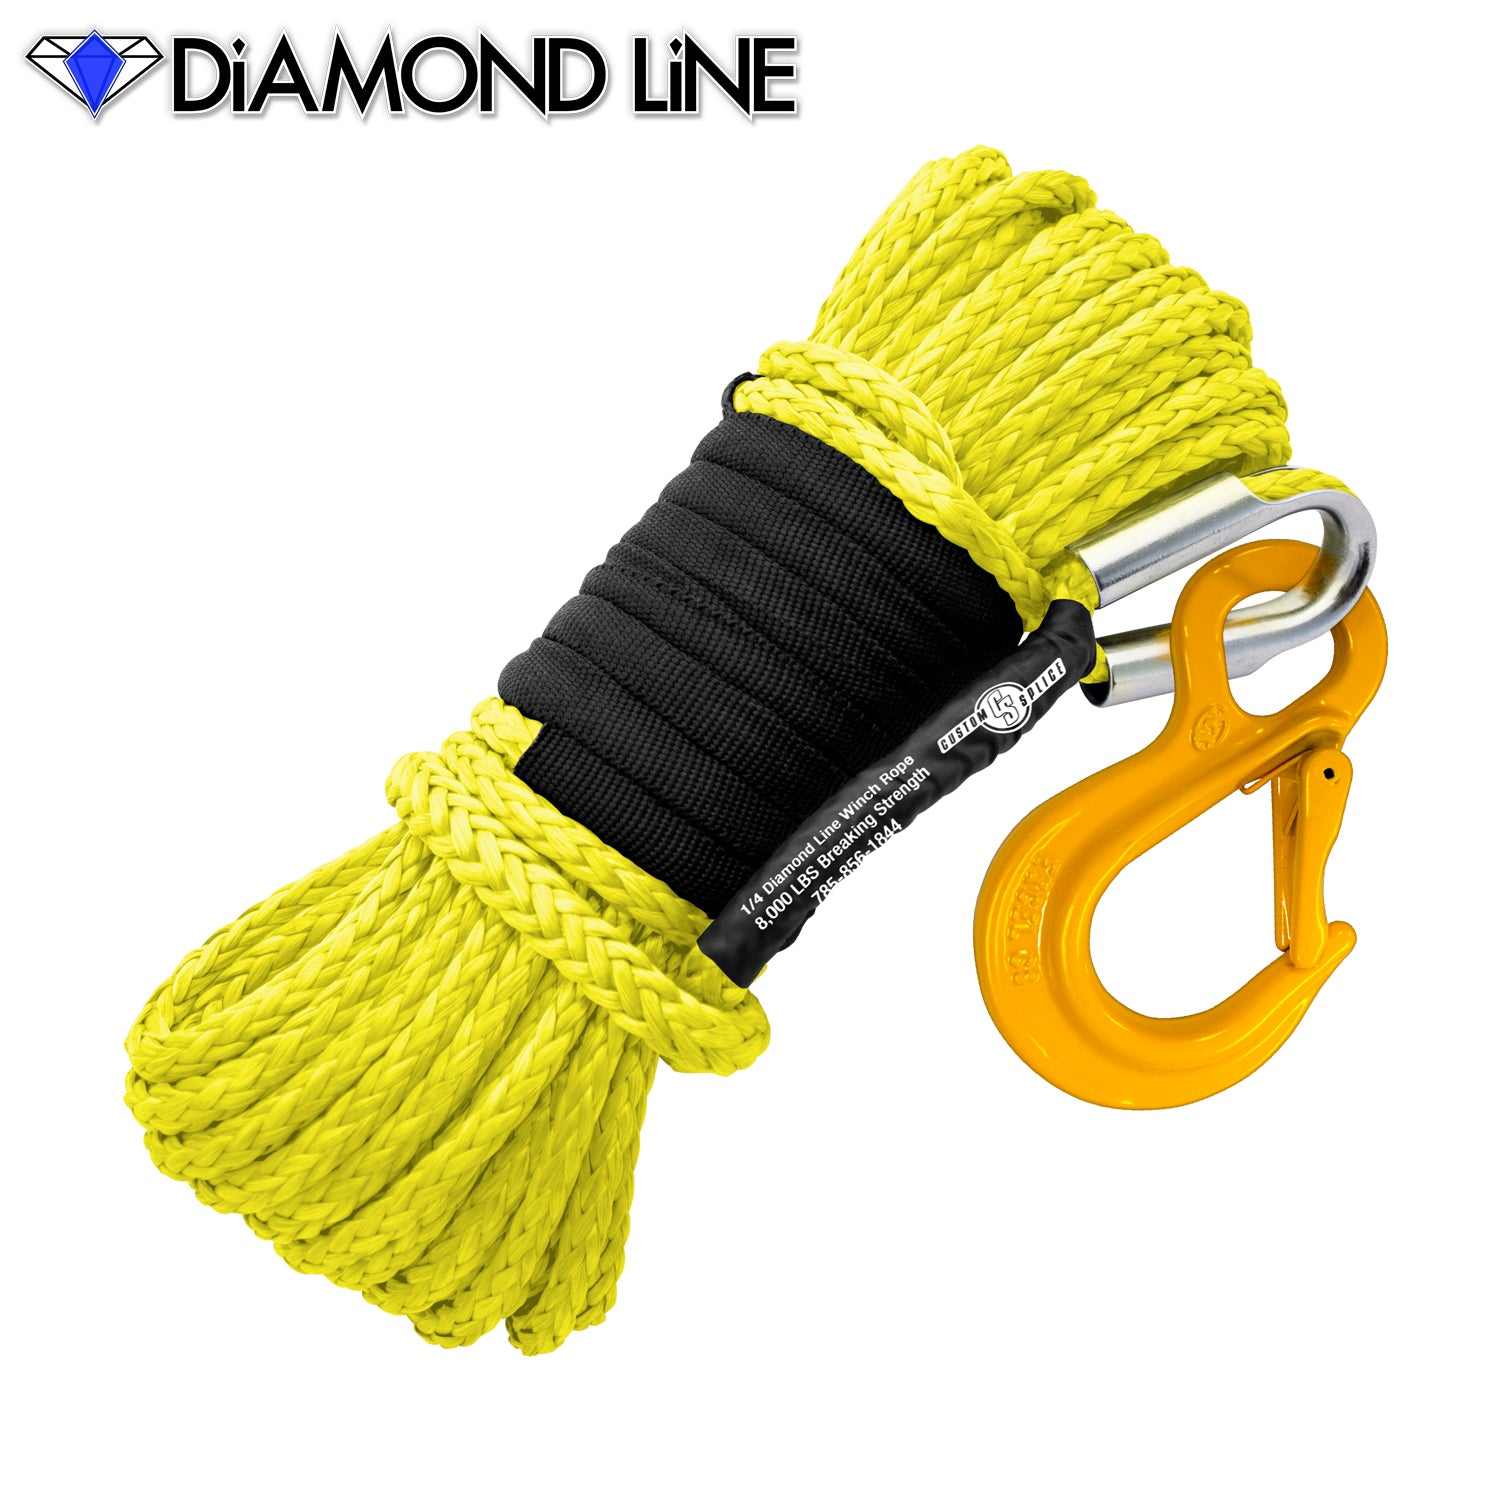 "1/4"" x 55' Diamond Line Synthetic Winch Rope Mainline - Yellow with Hook."